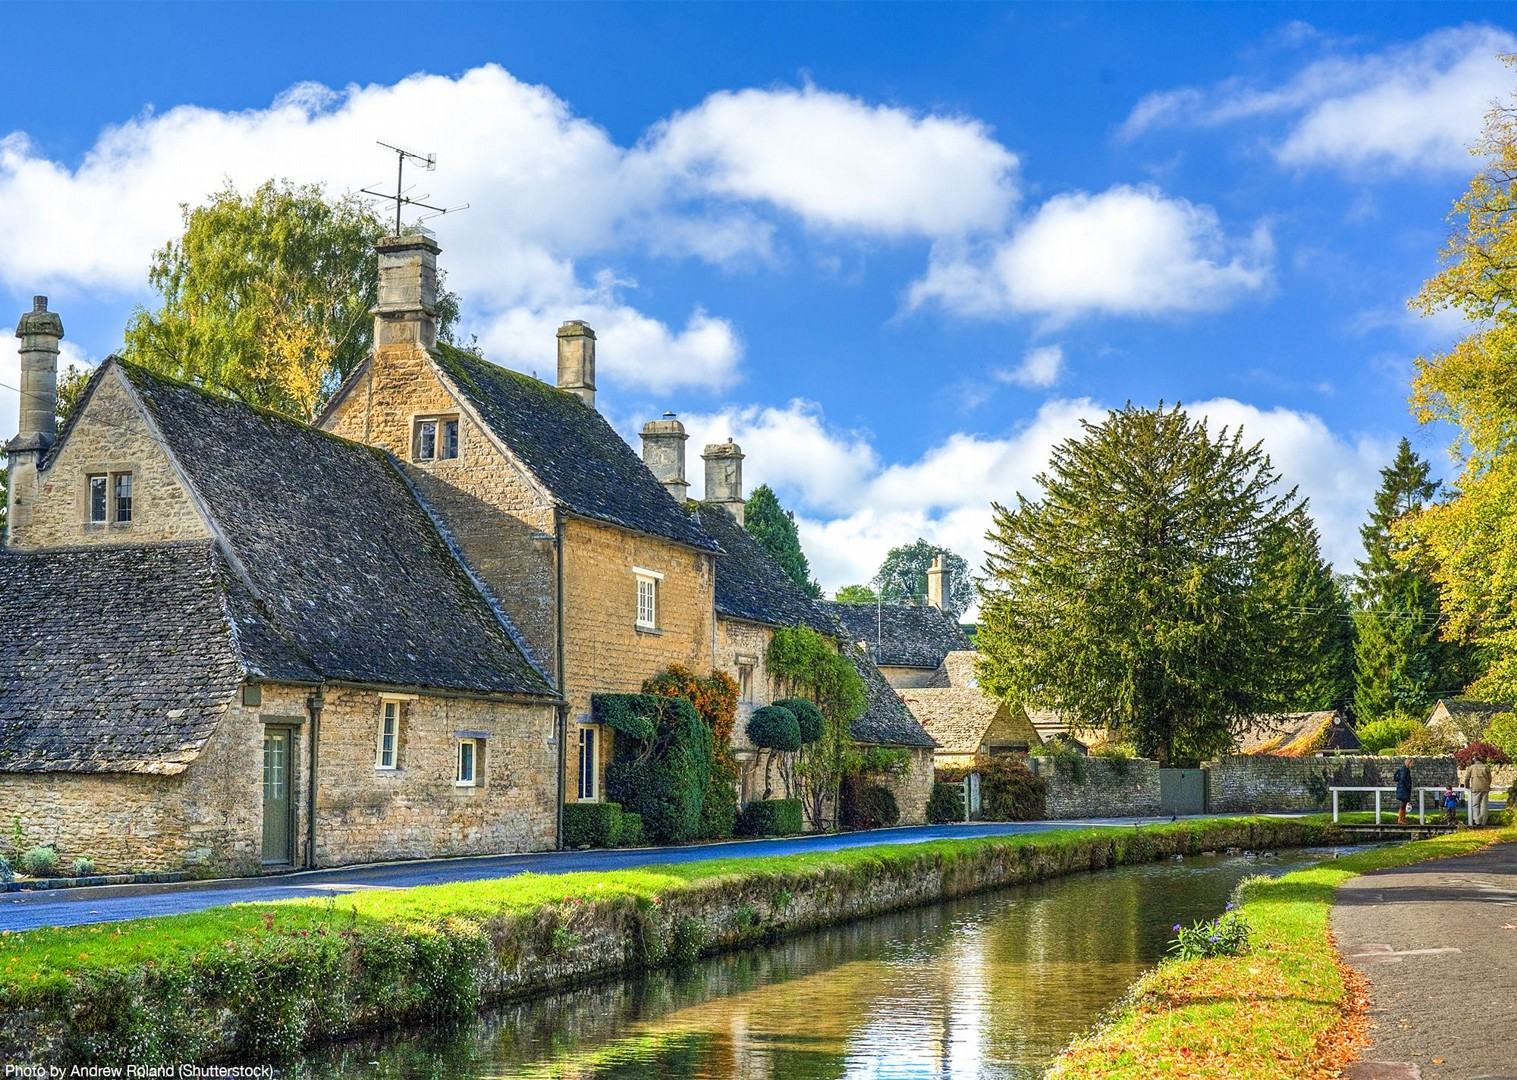 bibury-loop-cotswolds-bike-holiday-tour-saddle-skedaddle.jpg - UK - Cotswolds - Bourton-on-the-Water - Self-Guided Leisure Cycling Holiday - Leisure Cycling